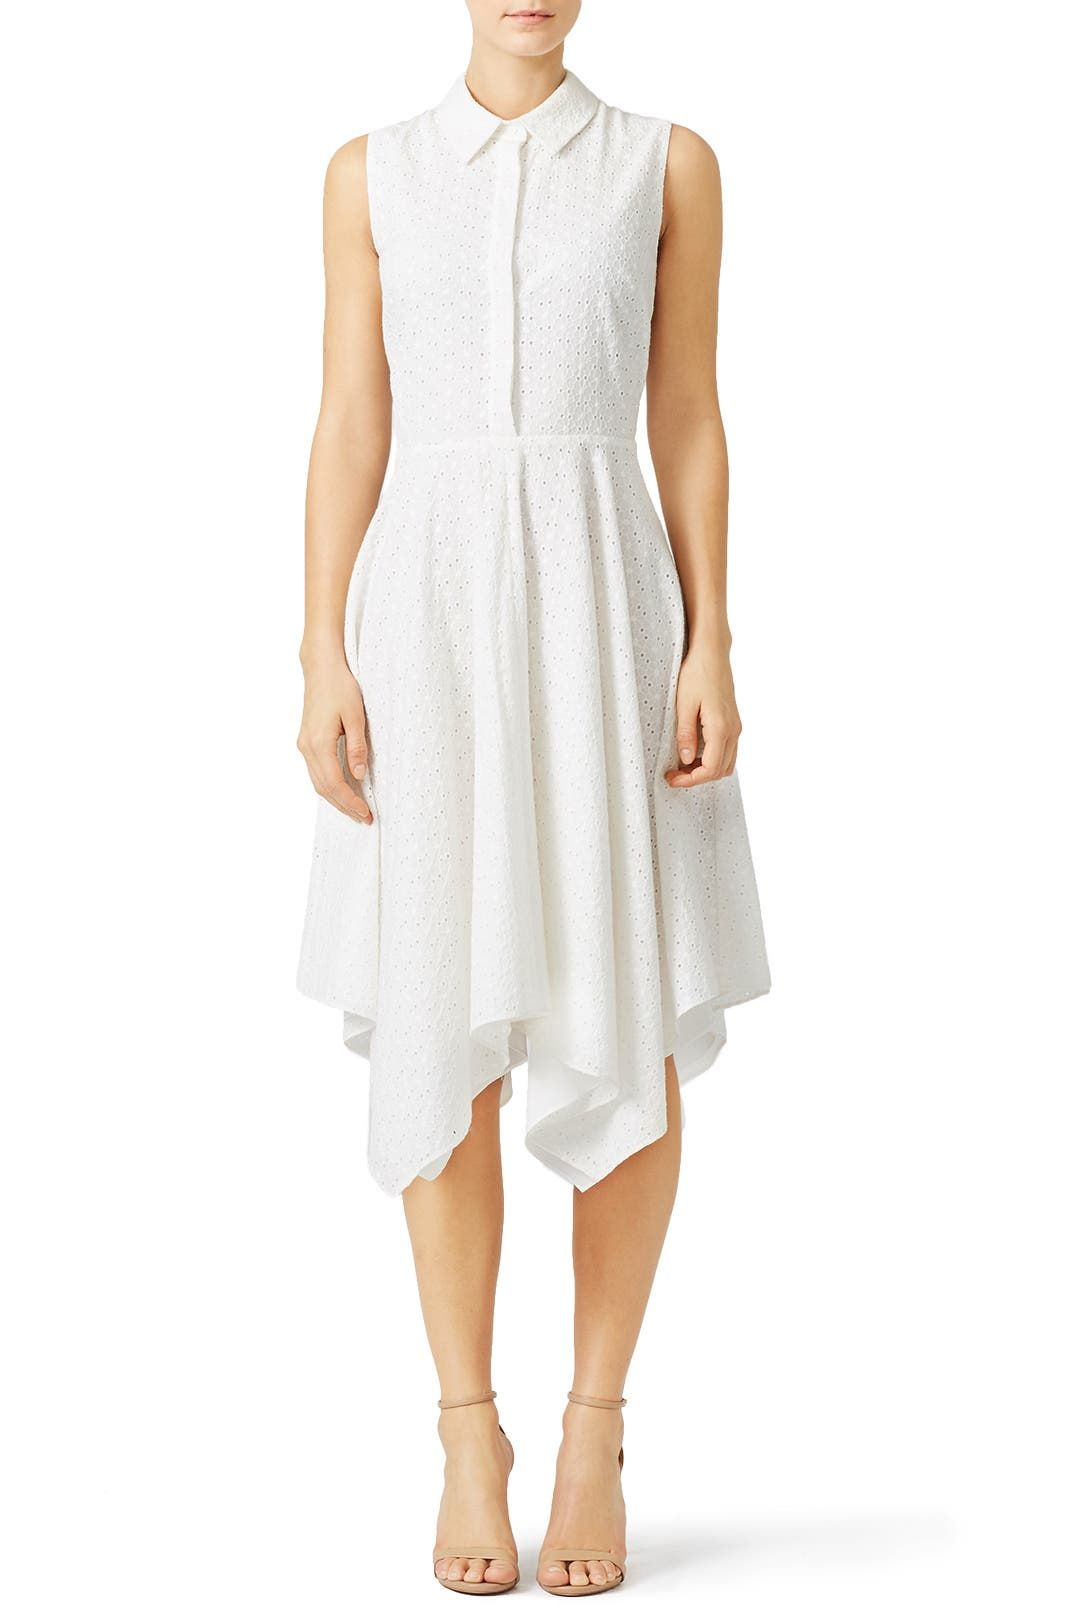 Slate & Willow White Picnic Party Dress